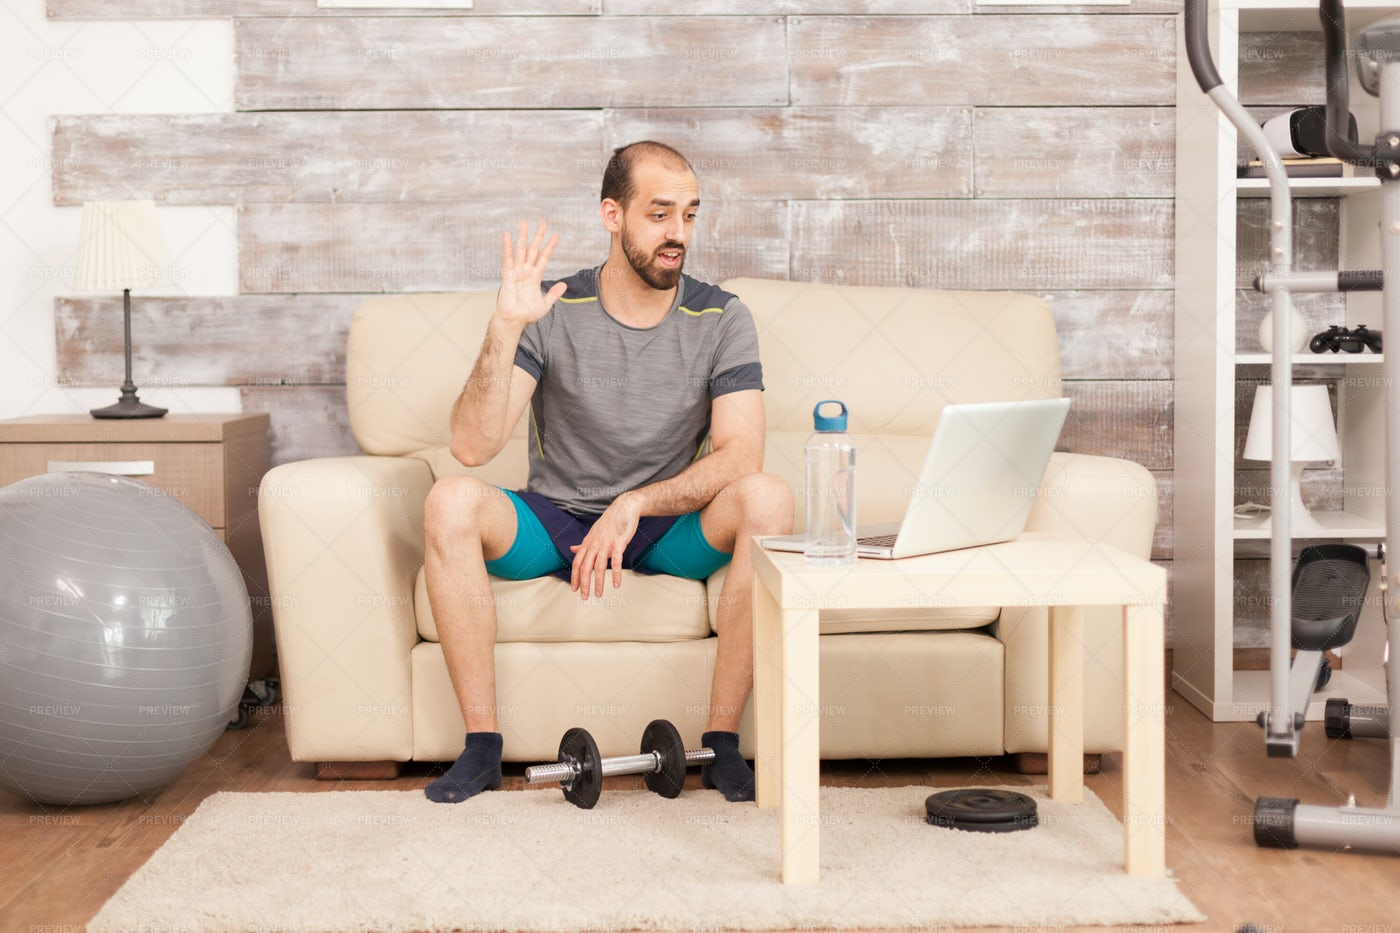 Talking With Personal Trainer: Stock Photos